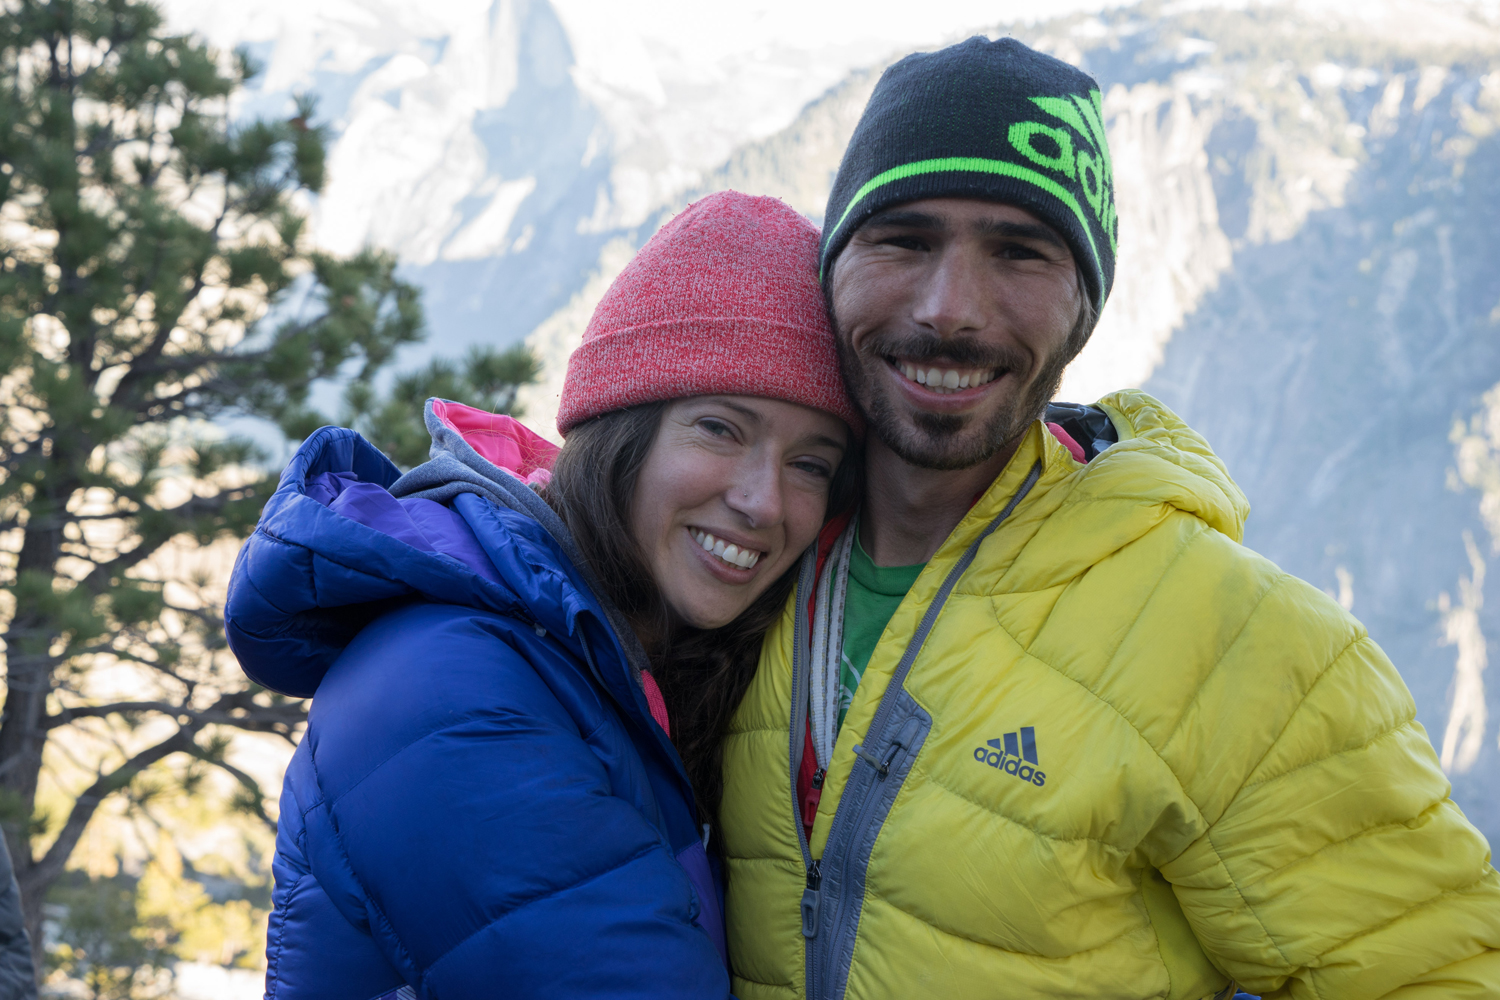 Kevin Jorgeson (in yellow) and his girlfriend Jacqui Becker (in purple).